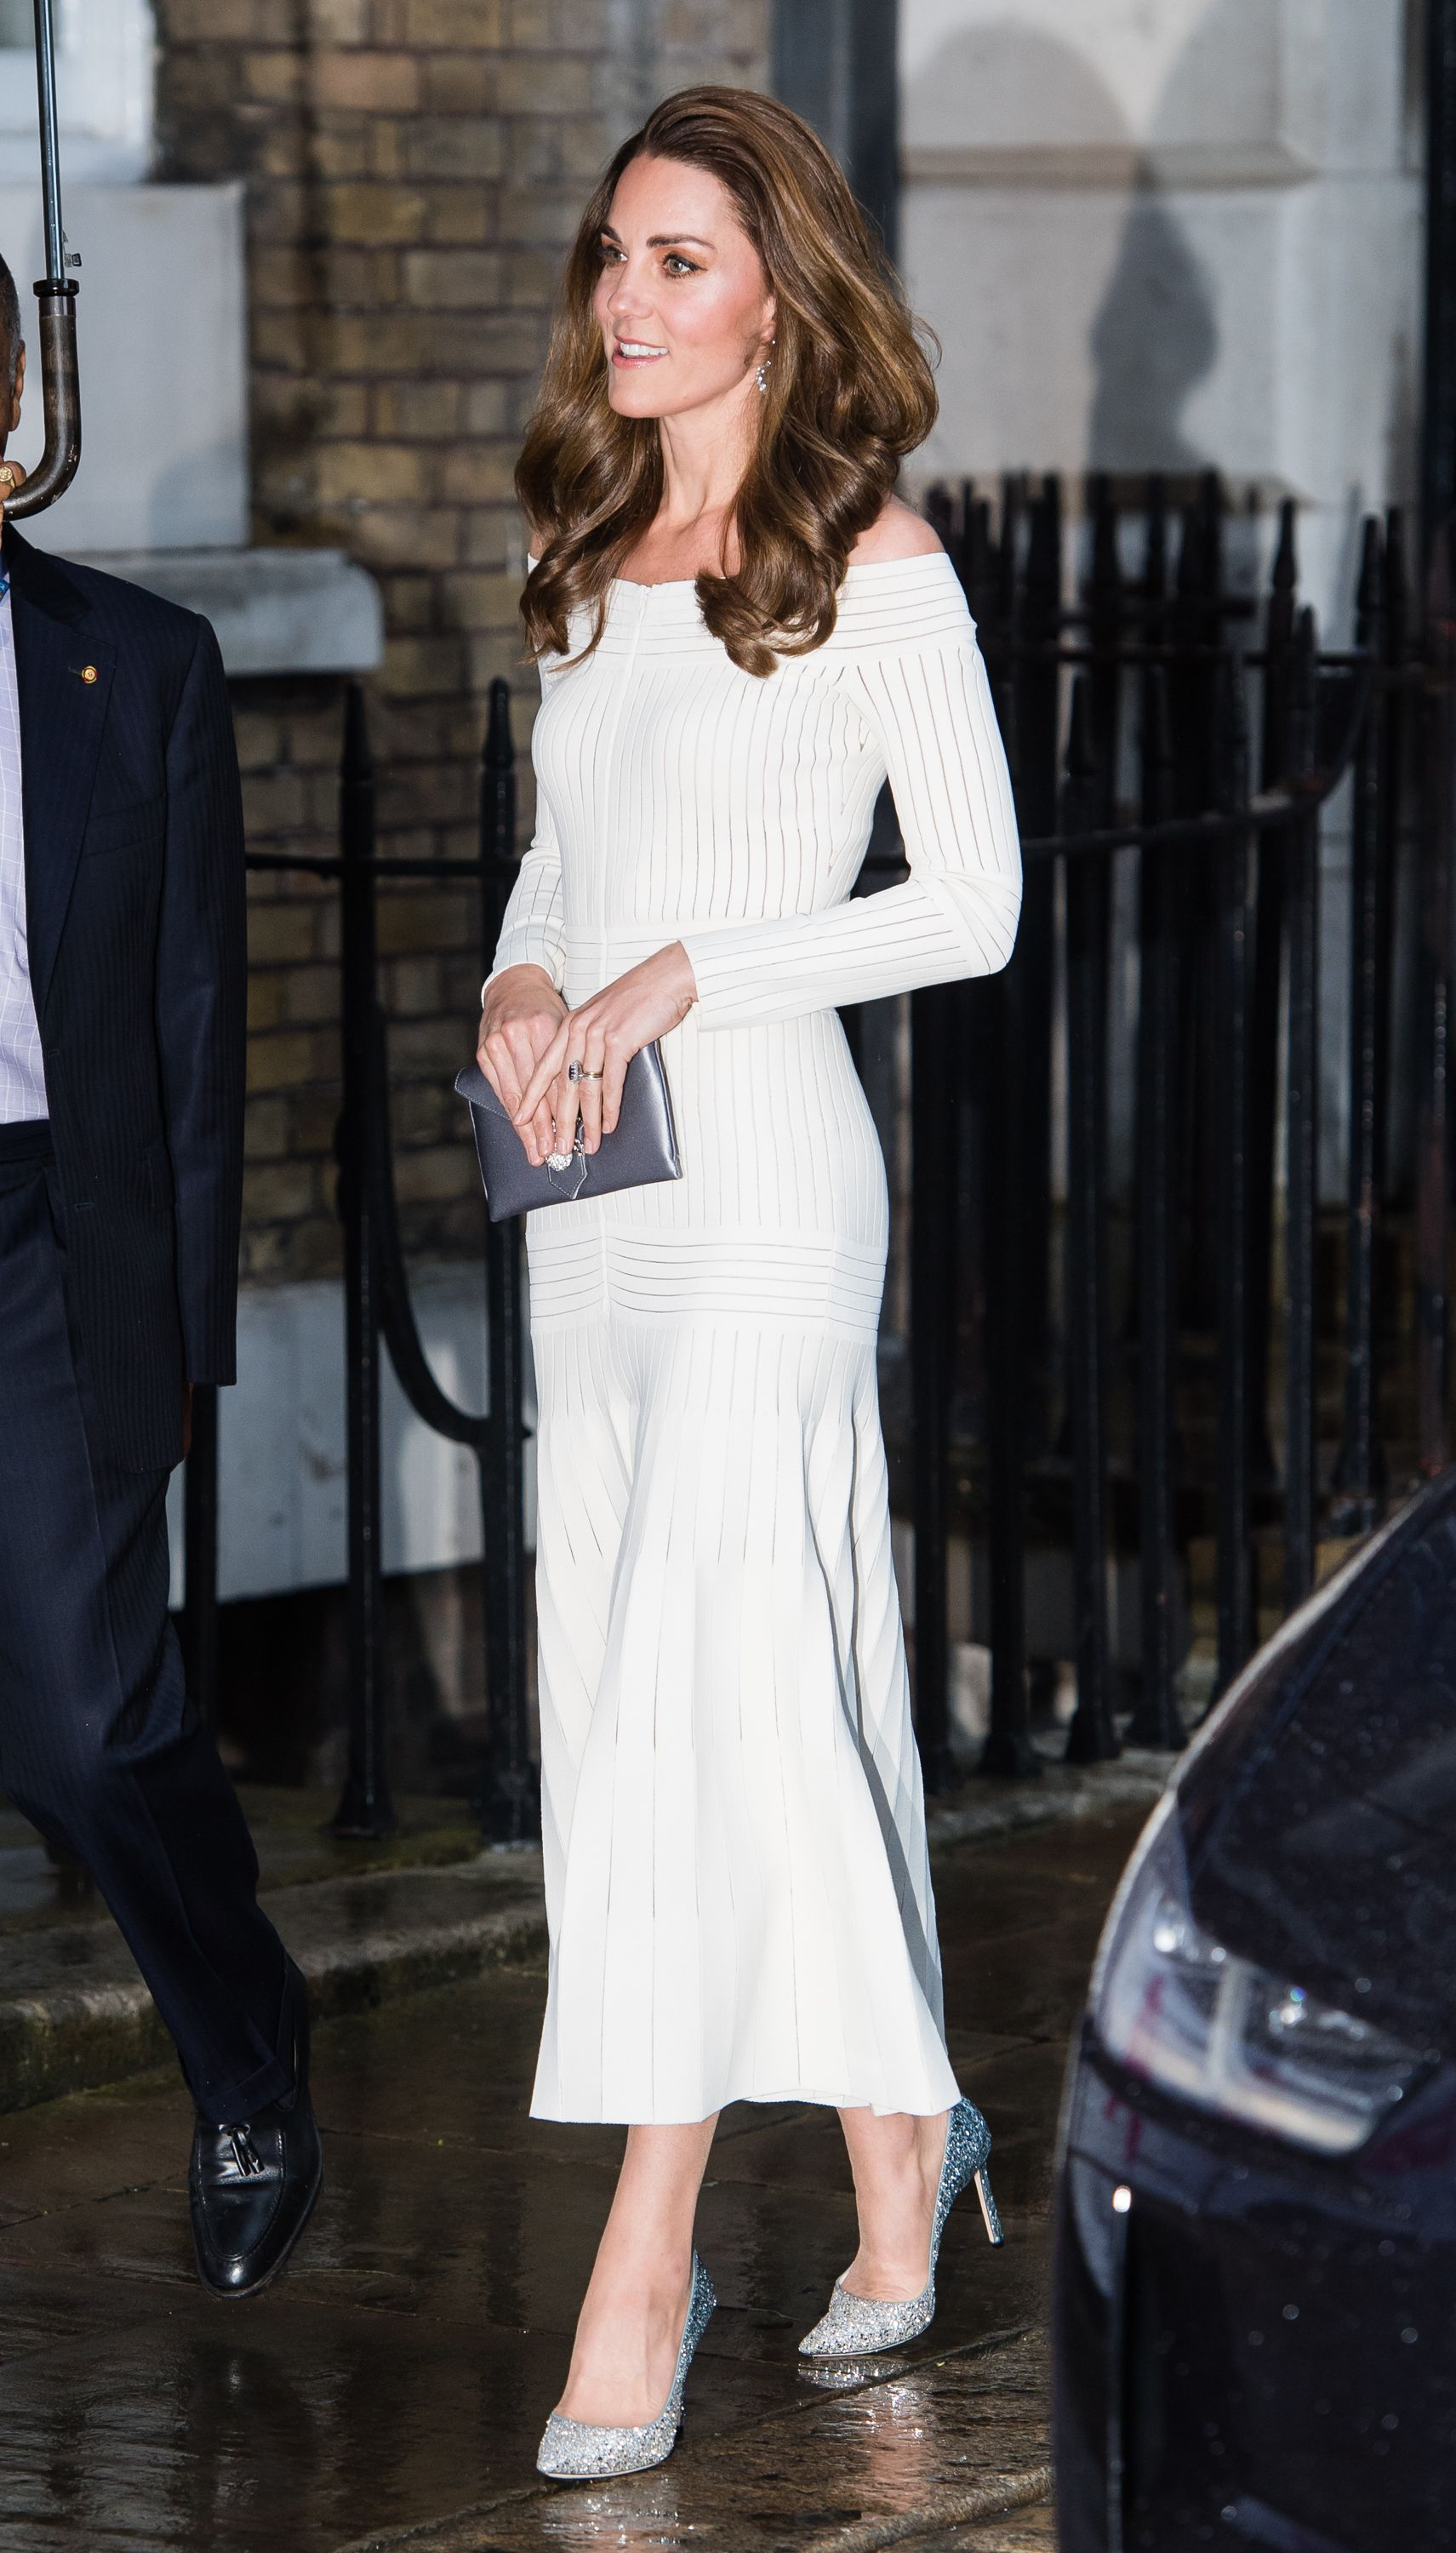 aabdcf505bdb6 Kate Middleton's Best Fashion Looks - Duchess of Cambridge's Chic Outfits